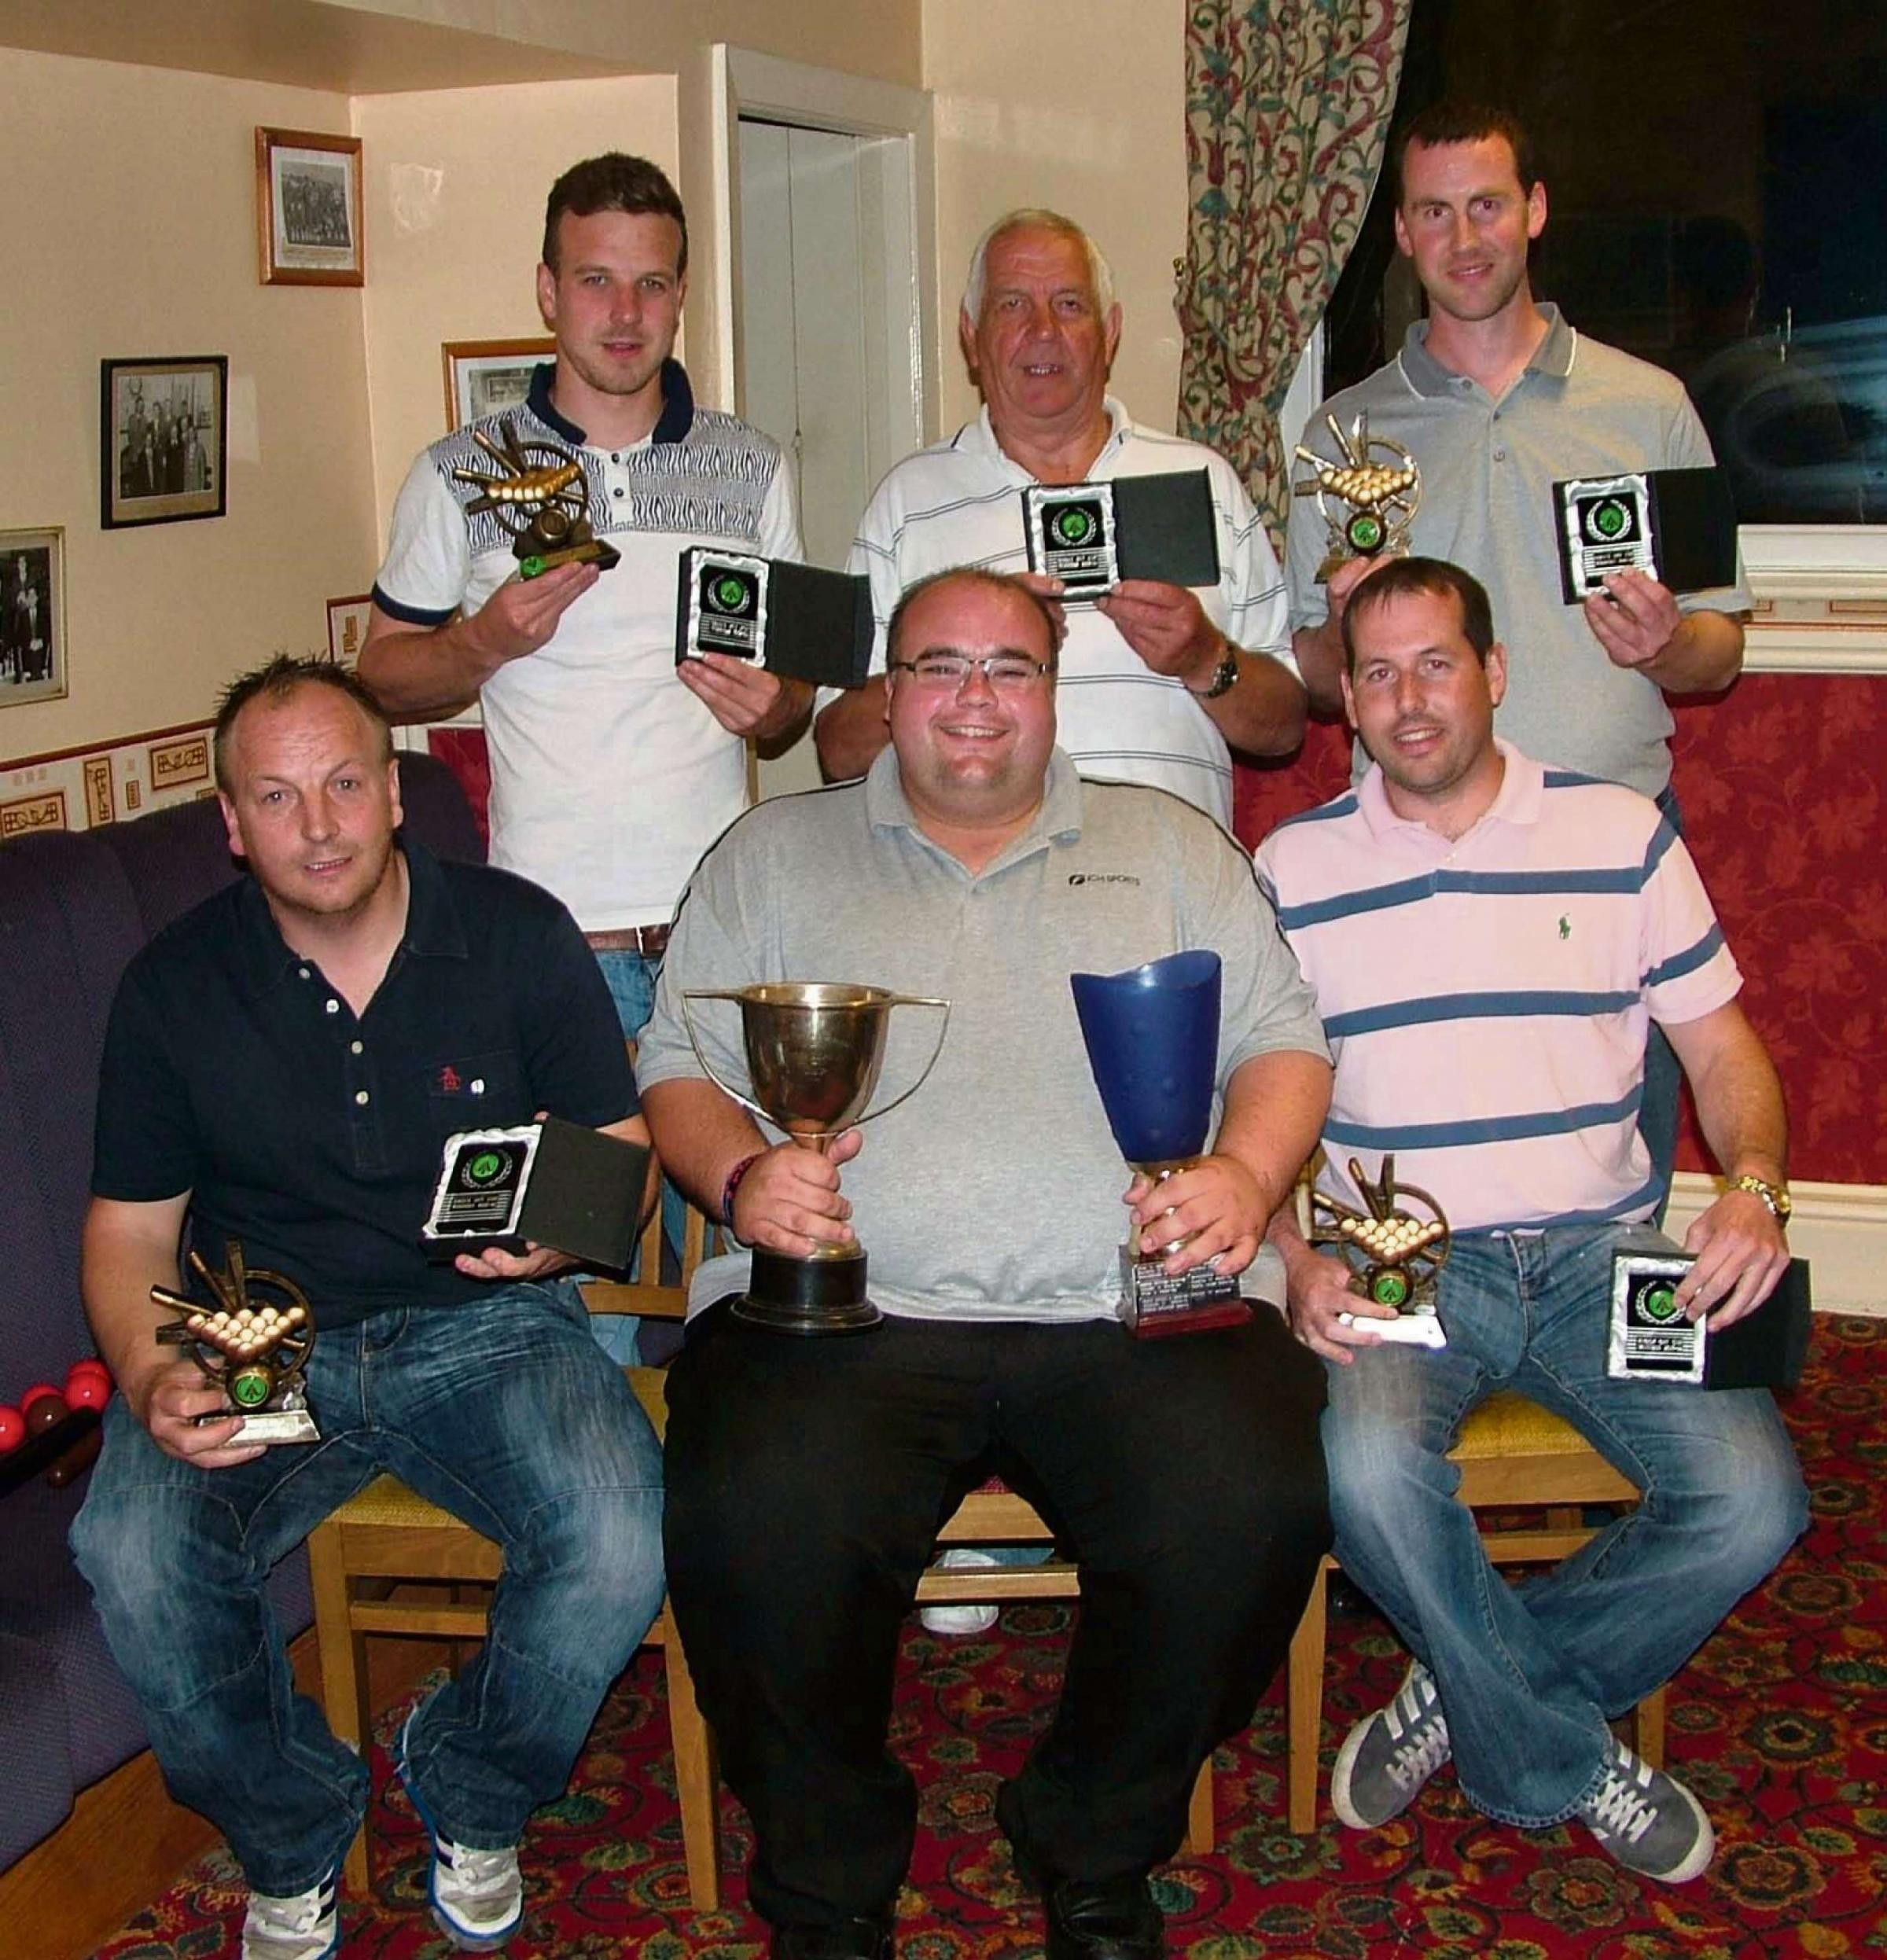 DOUBLE WINNERS: The British Legion snooker team of Mark McCarthy, Gareth Barrett, David Malloy, Richard Jones, D